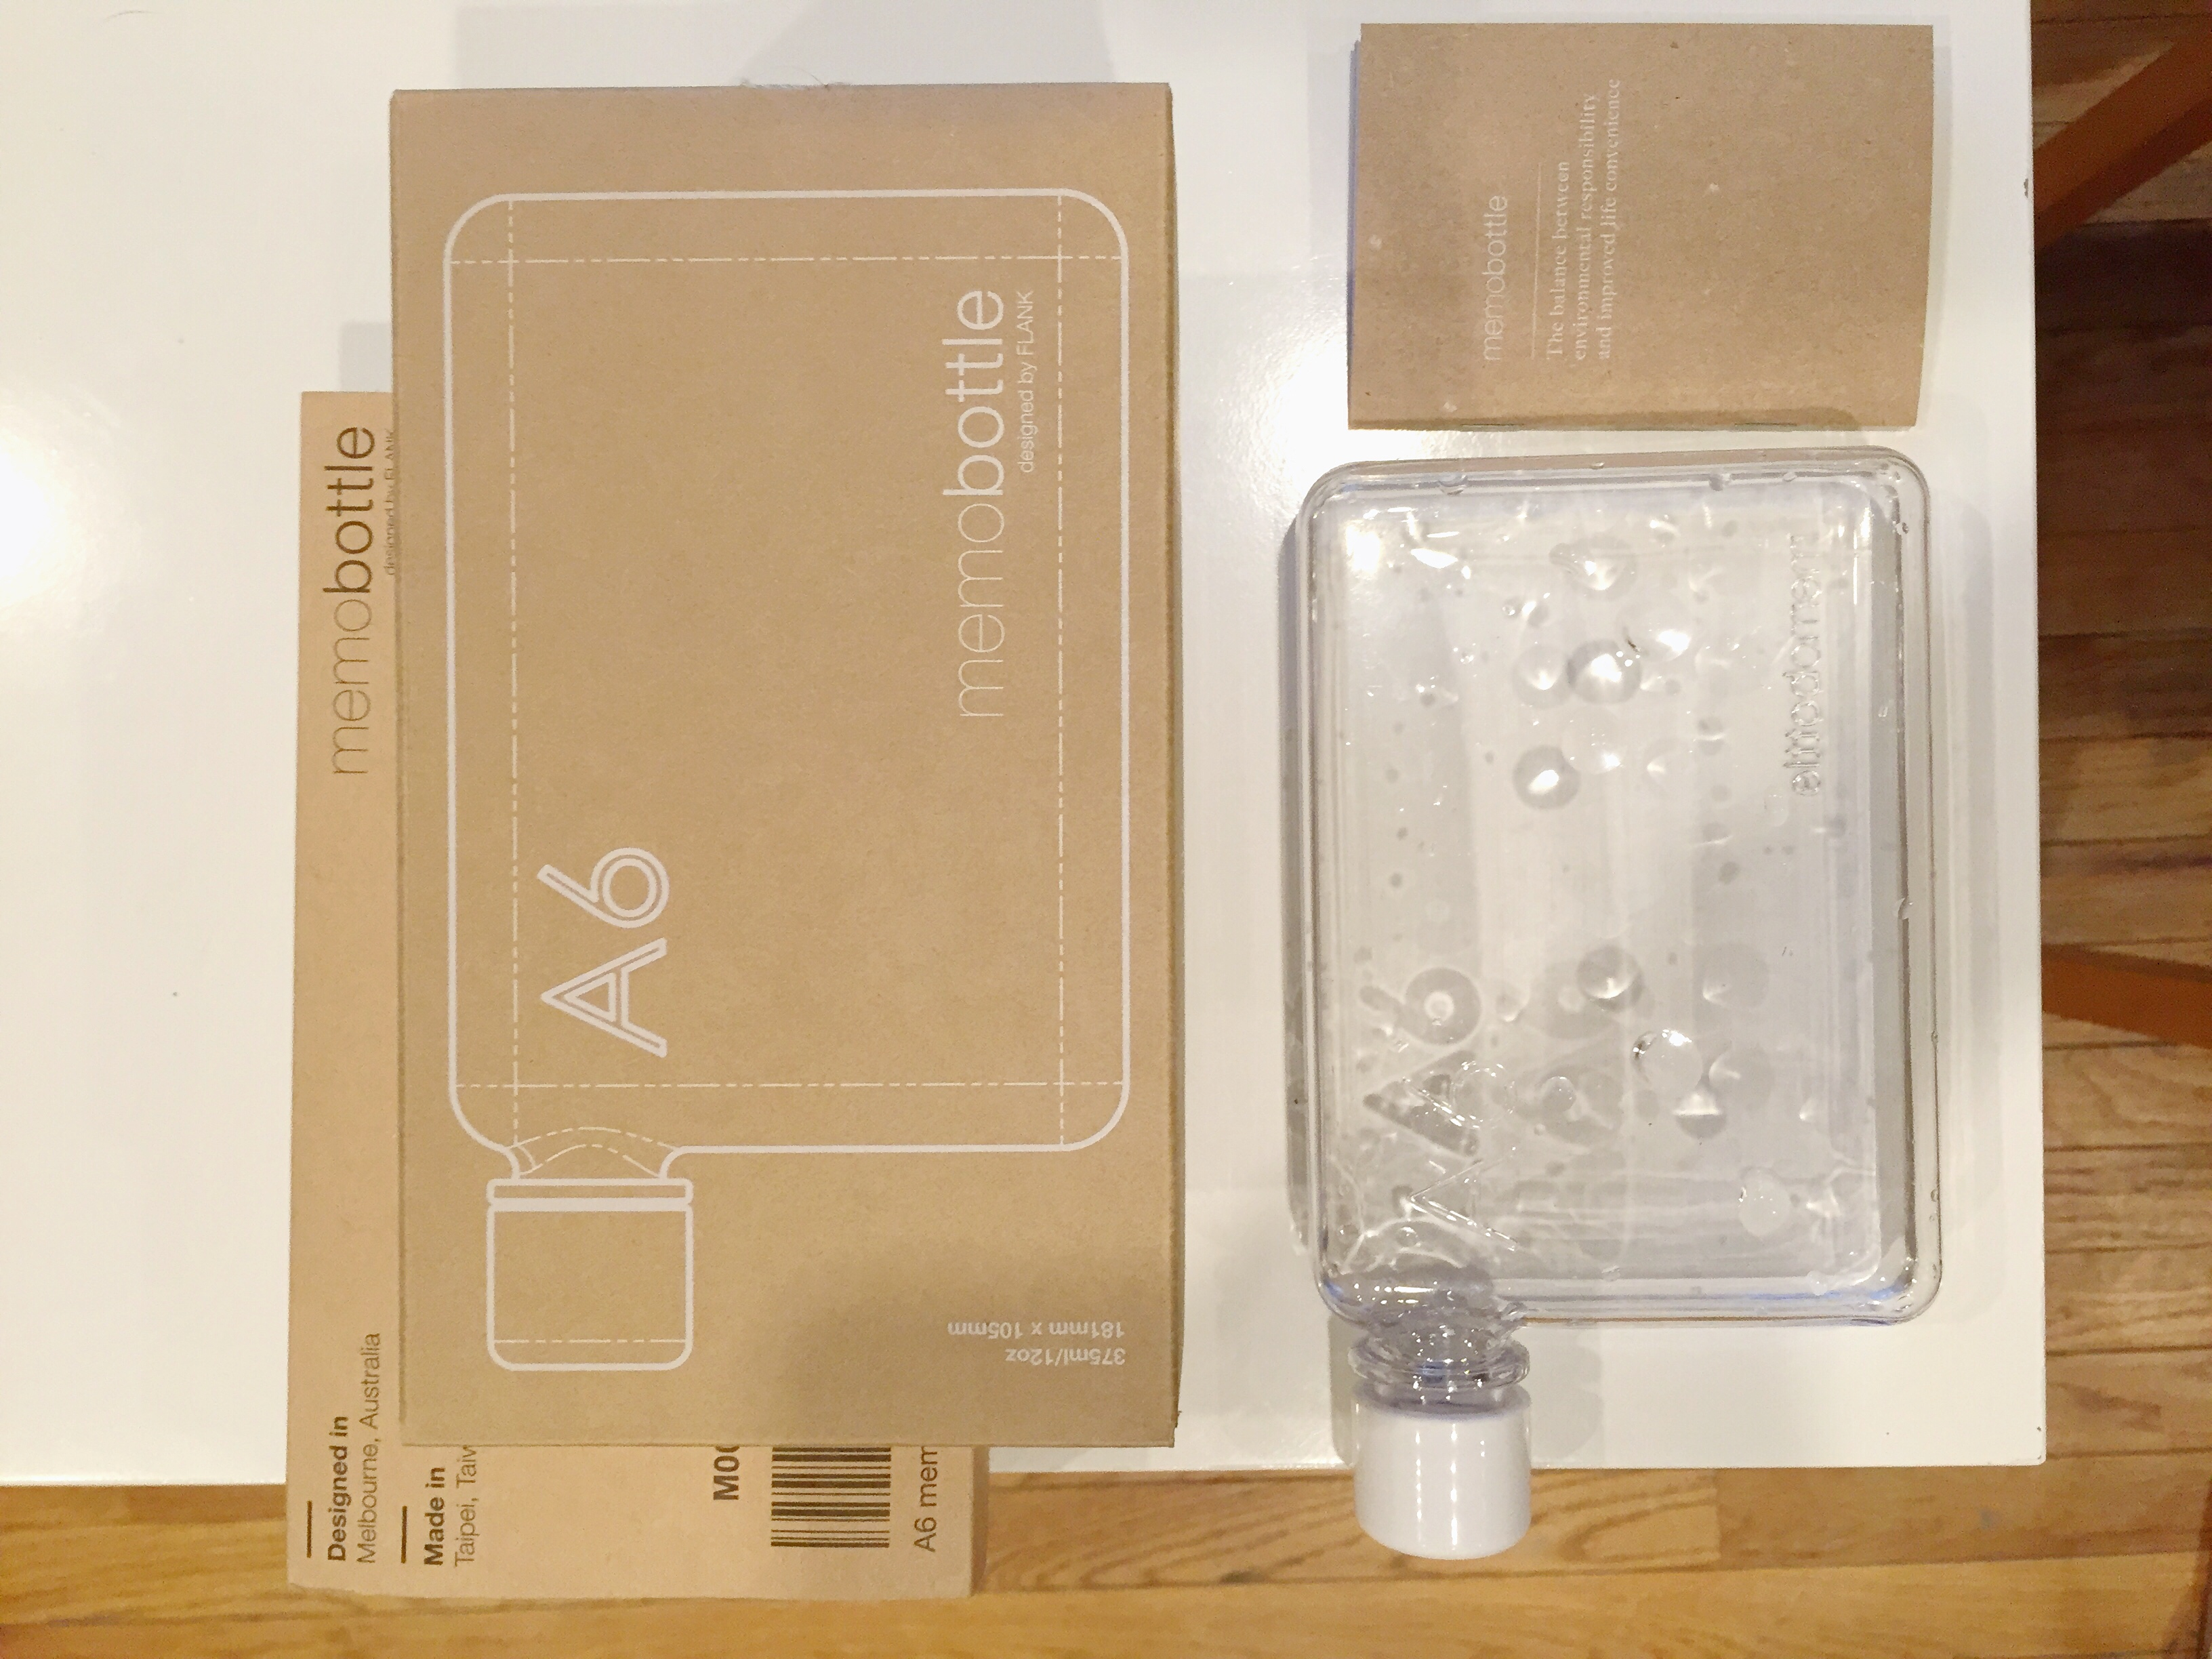 A6 memobottle package